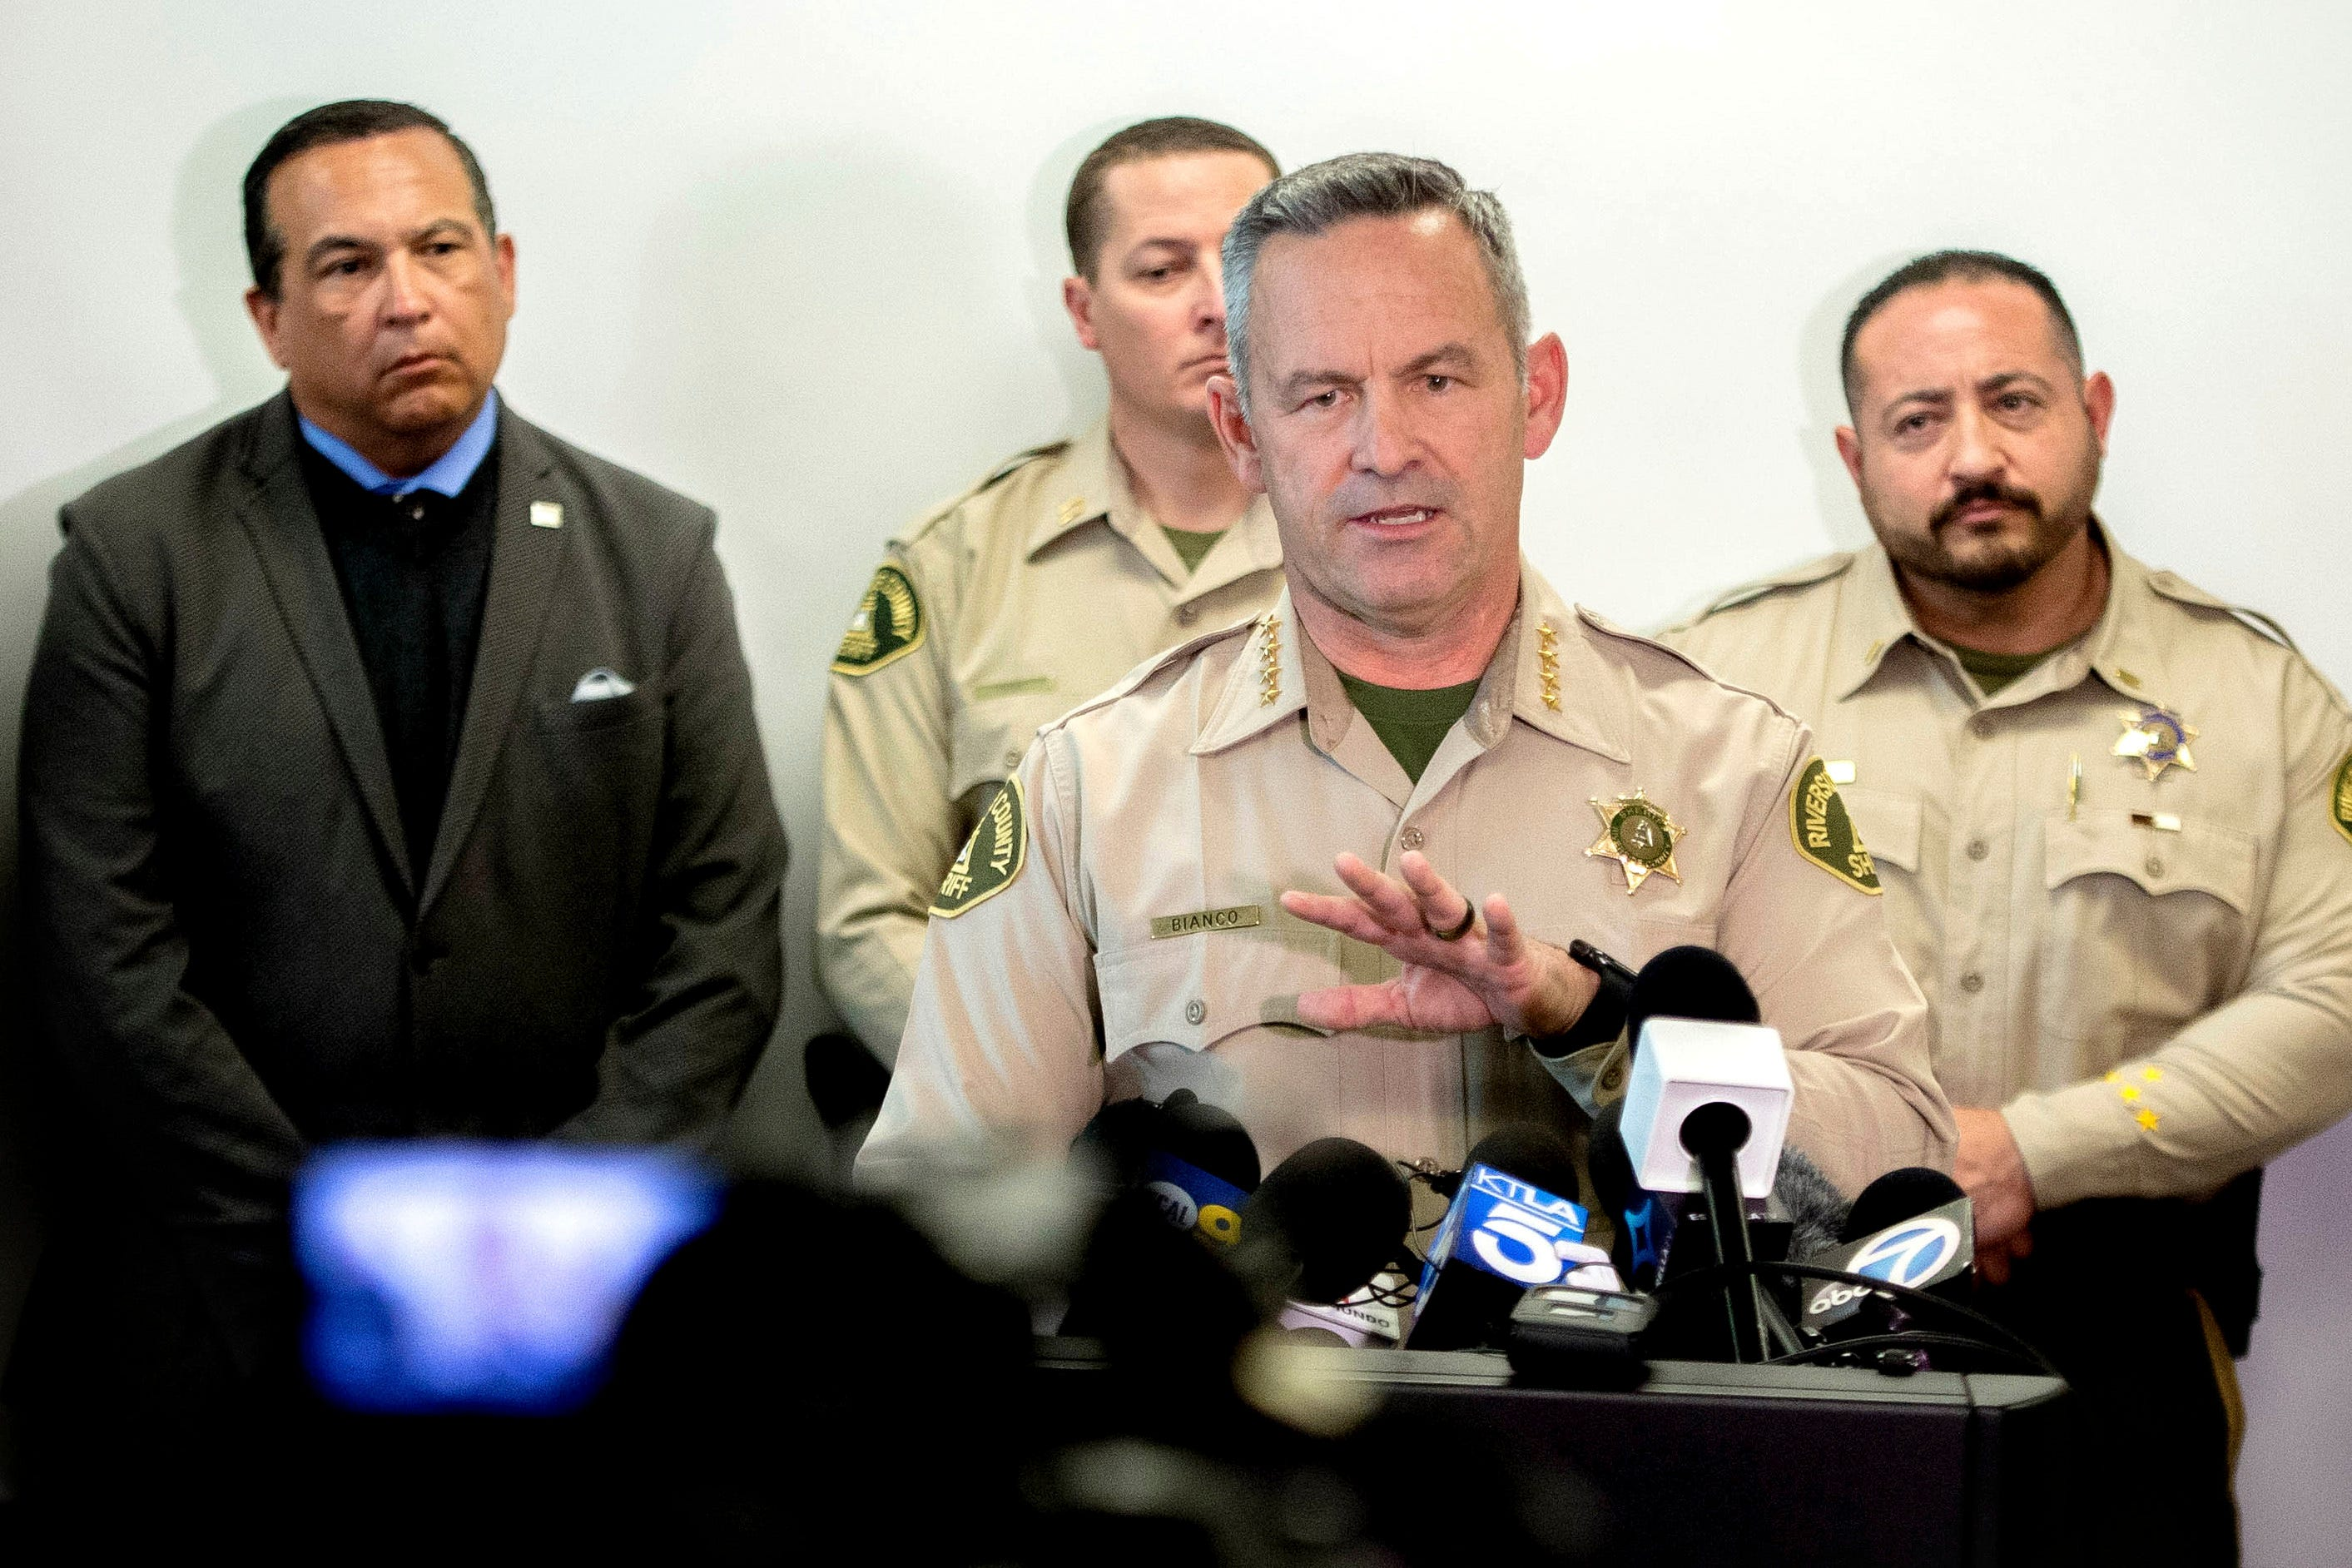 Riverside County Sheriff Department Chad Bianco said in an April 17, 2020 video that inmates are being cared for adequately in the jail system as the county's count of inmates who had contracted COVID-19 passed 100.